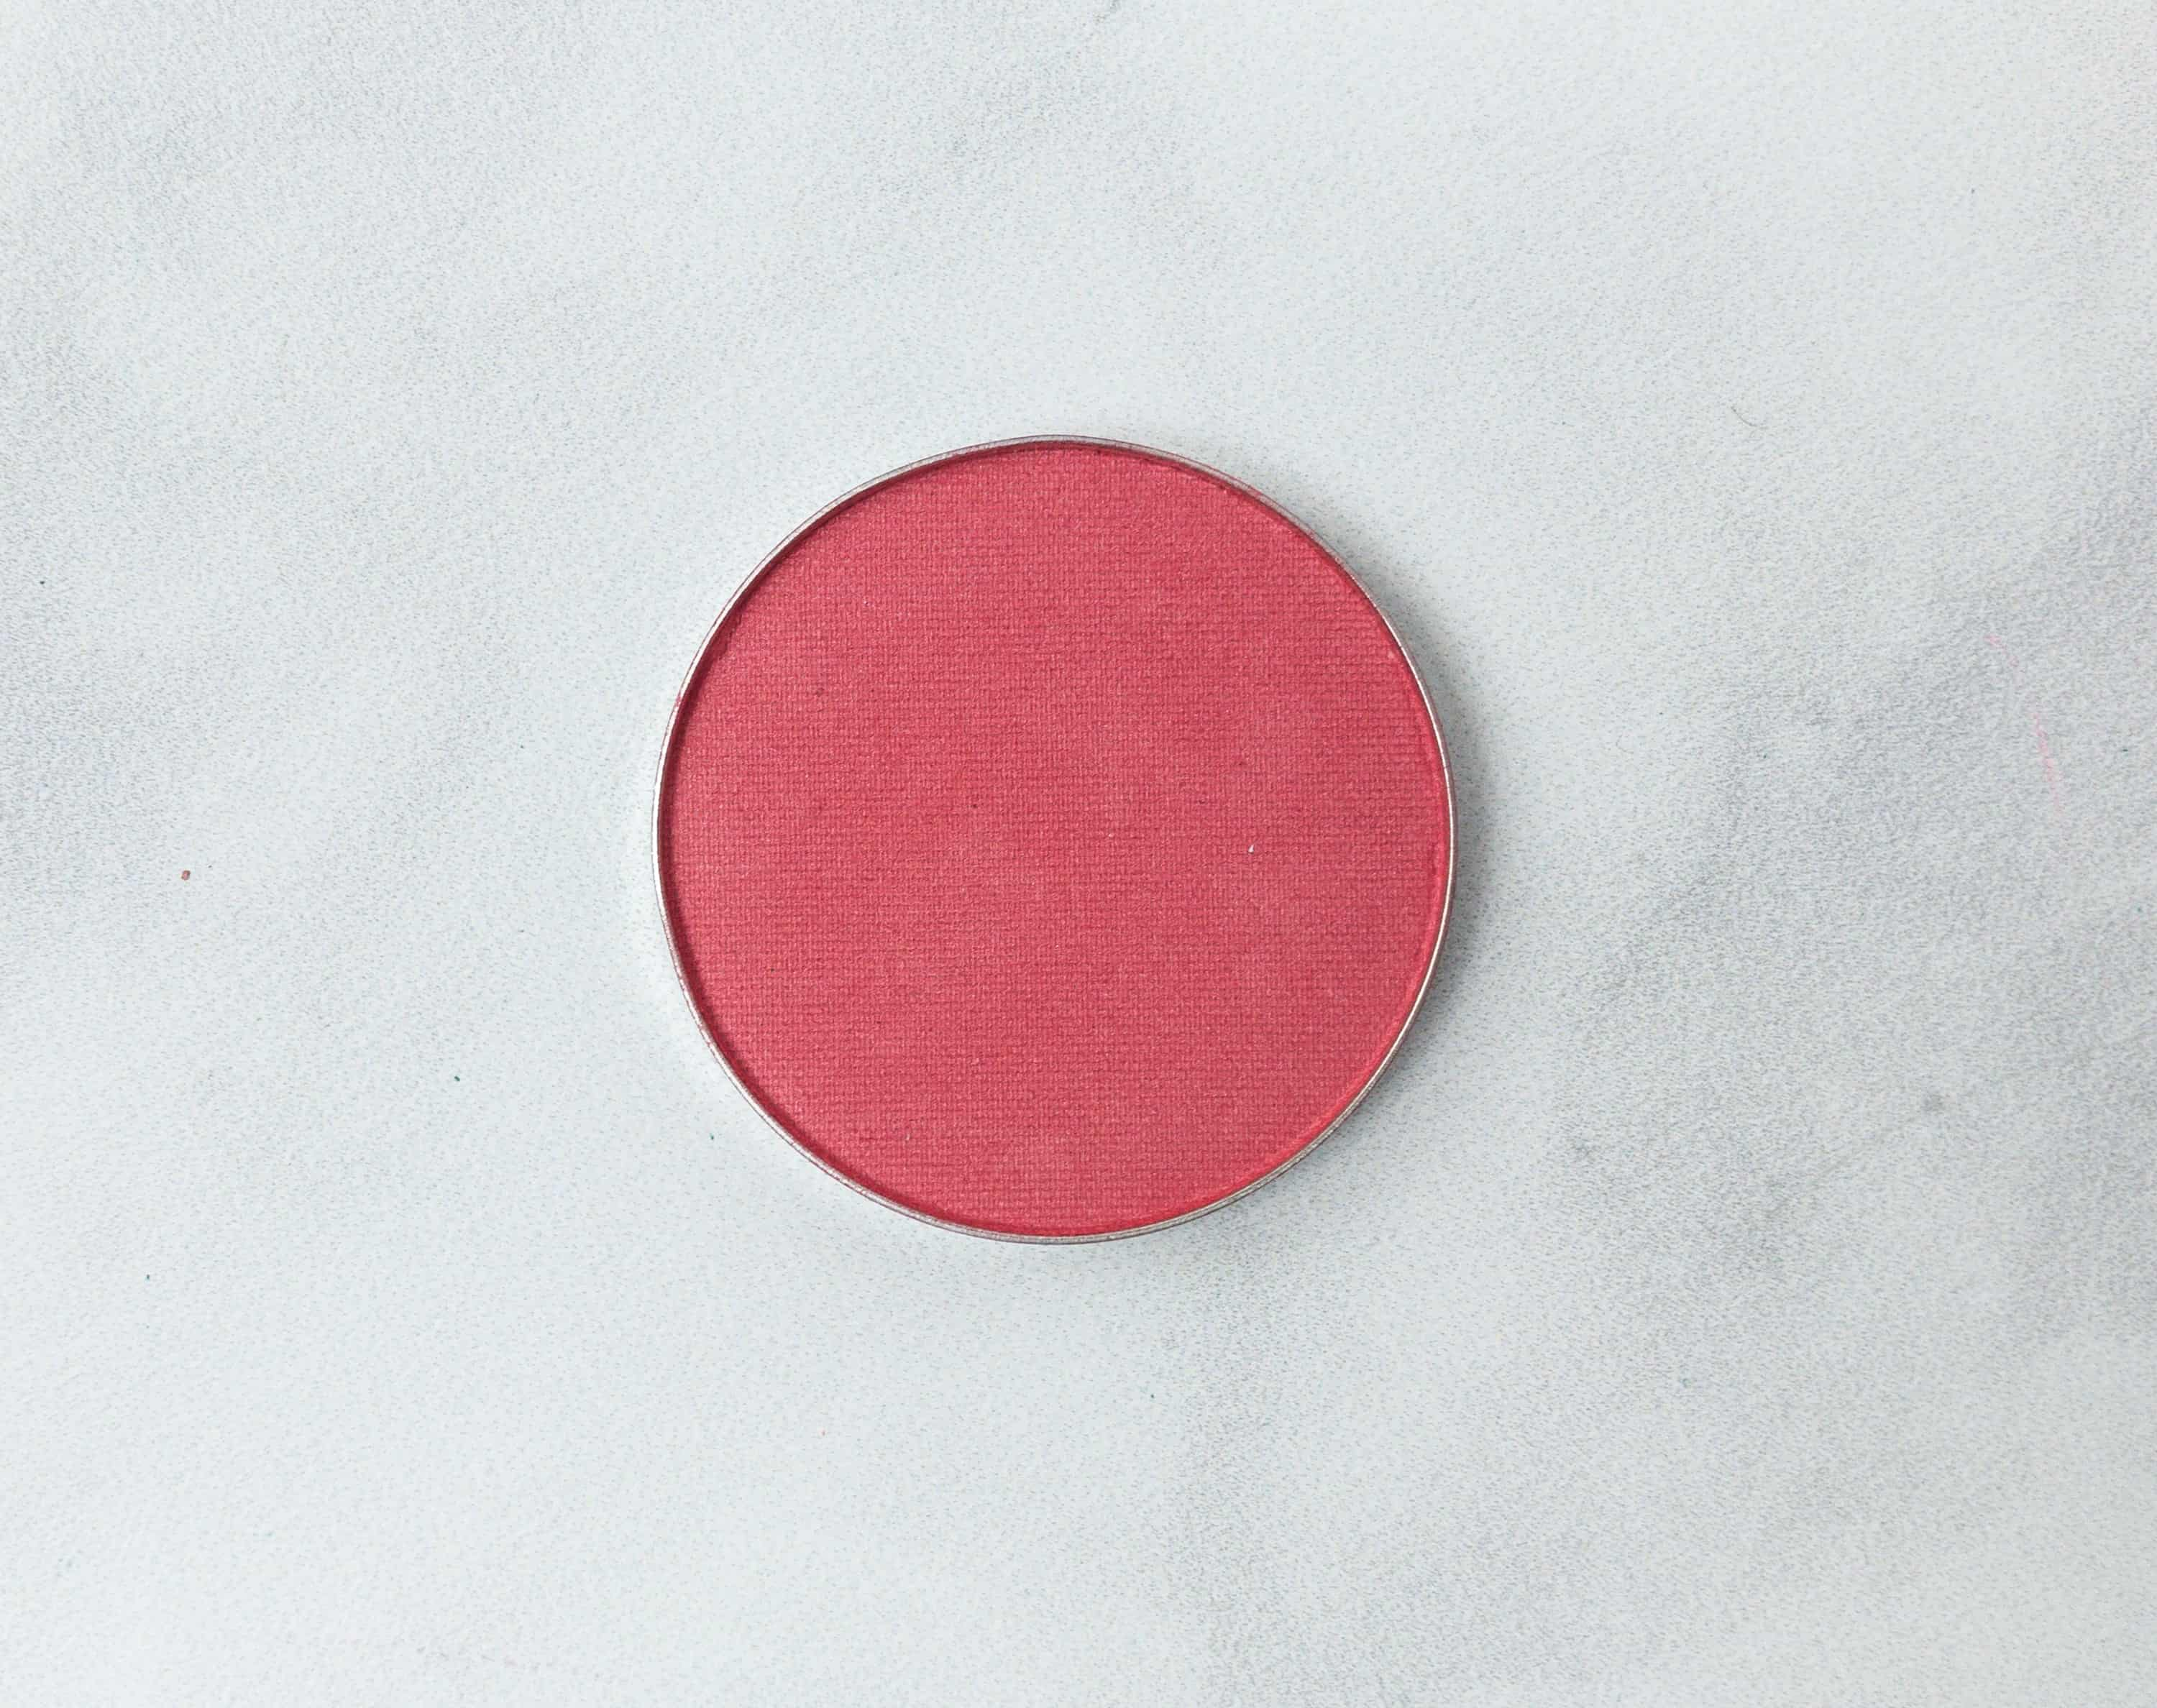 This Is A Bright Coral Matte Shade That Has Buildable